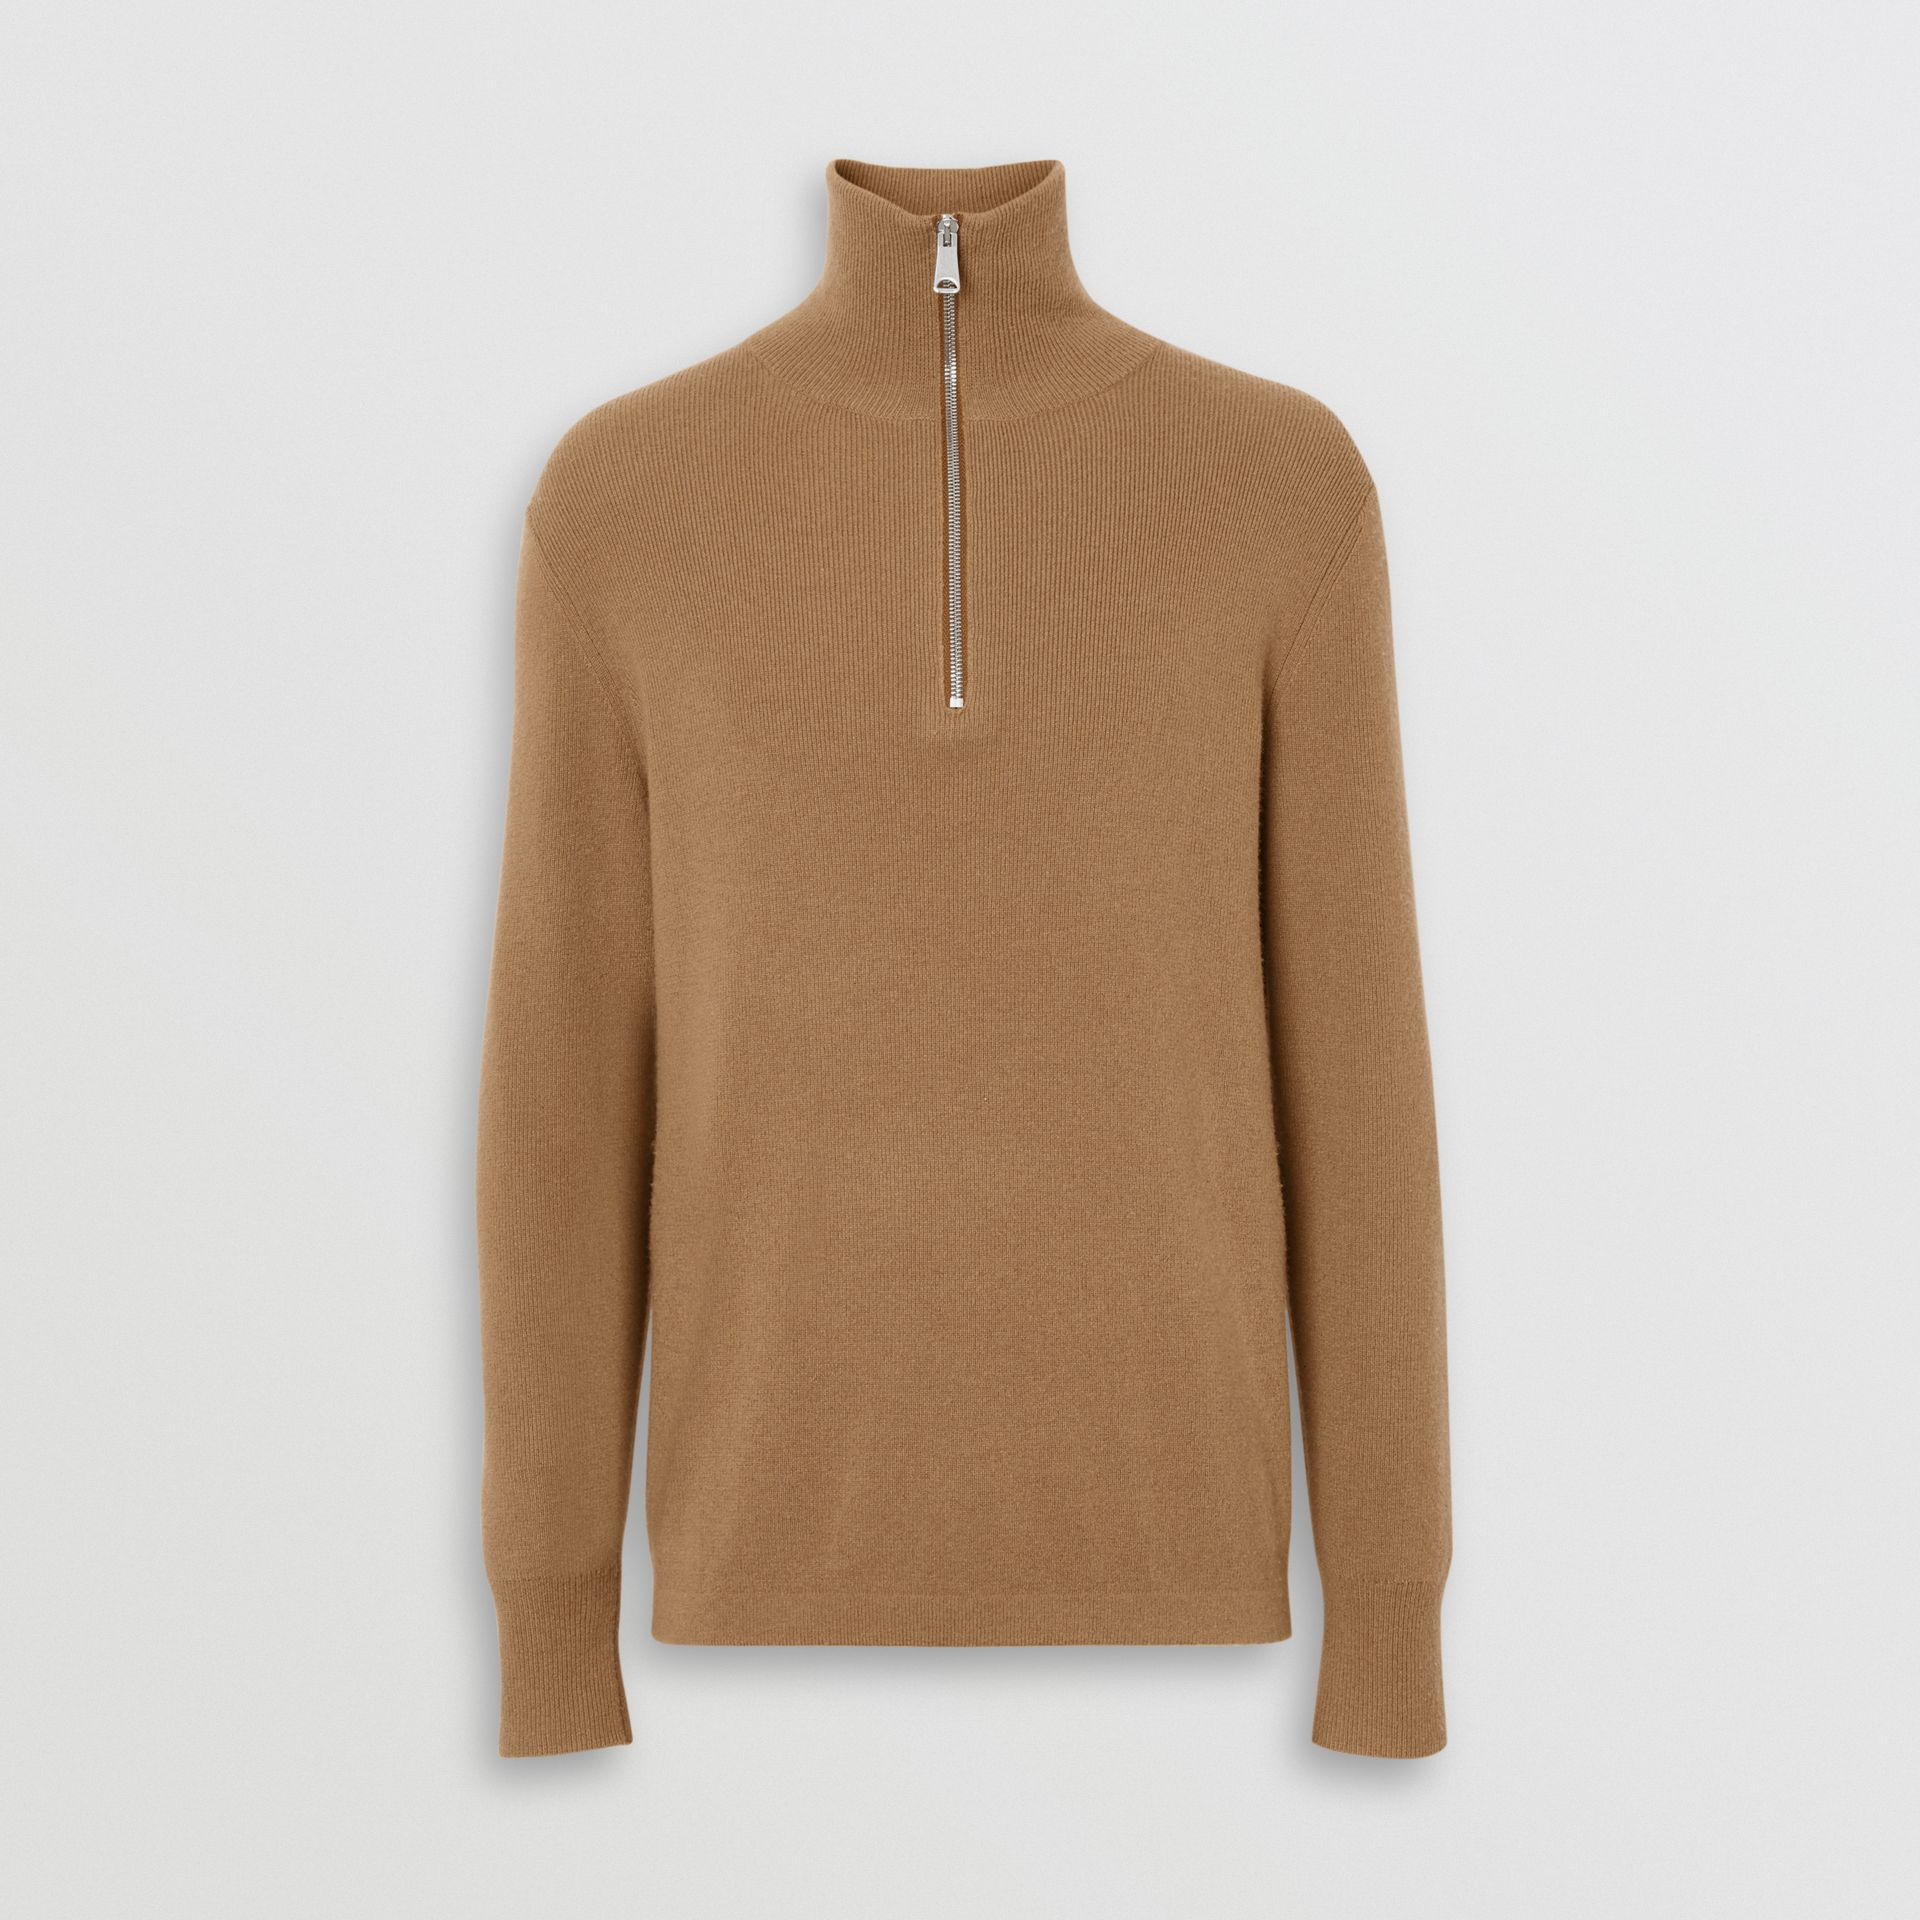 Rib Knit Cashmere Half-zip Sweater in Camel - Men | Burberry - gallery image 3